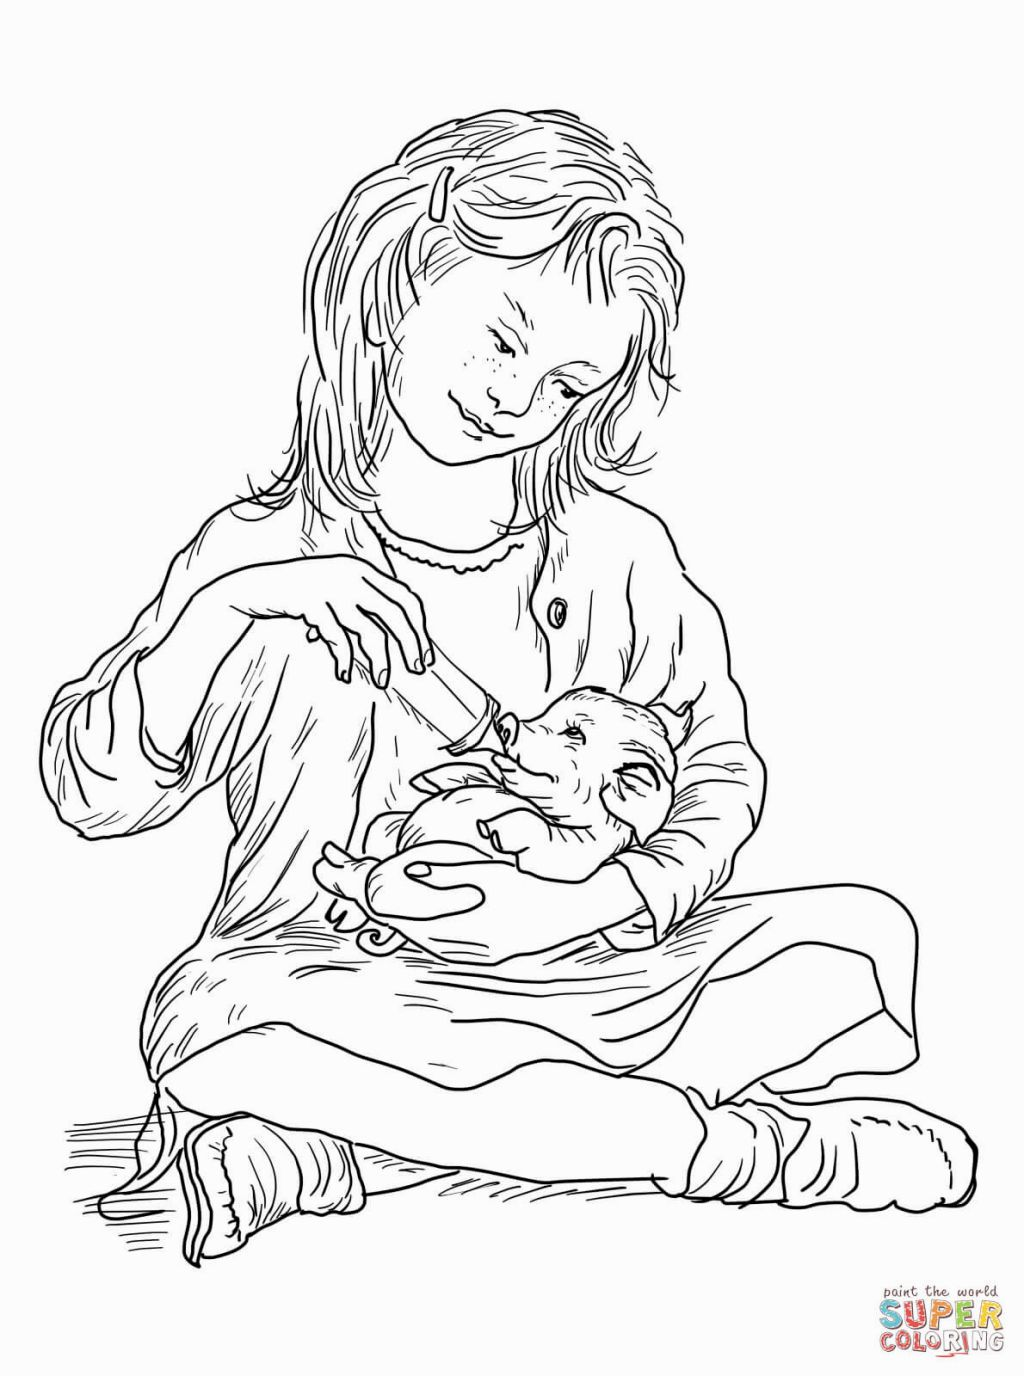 Charlottes Web Coloring Pages | Coloring Pages | Pinterest